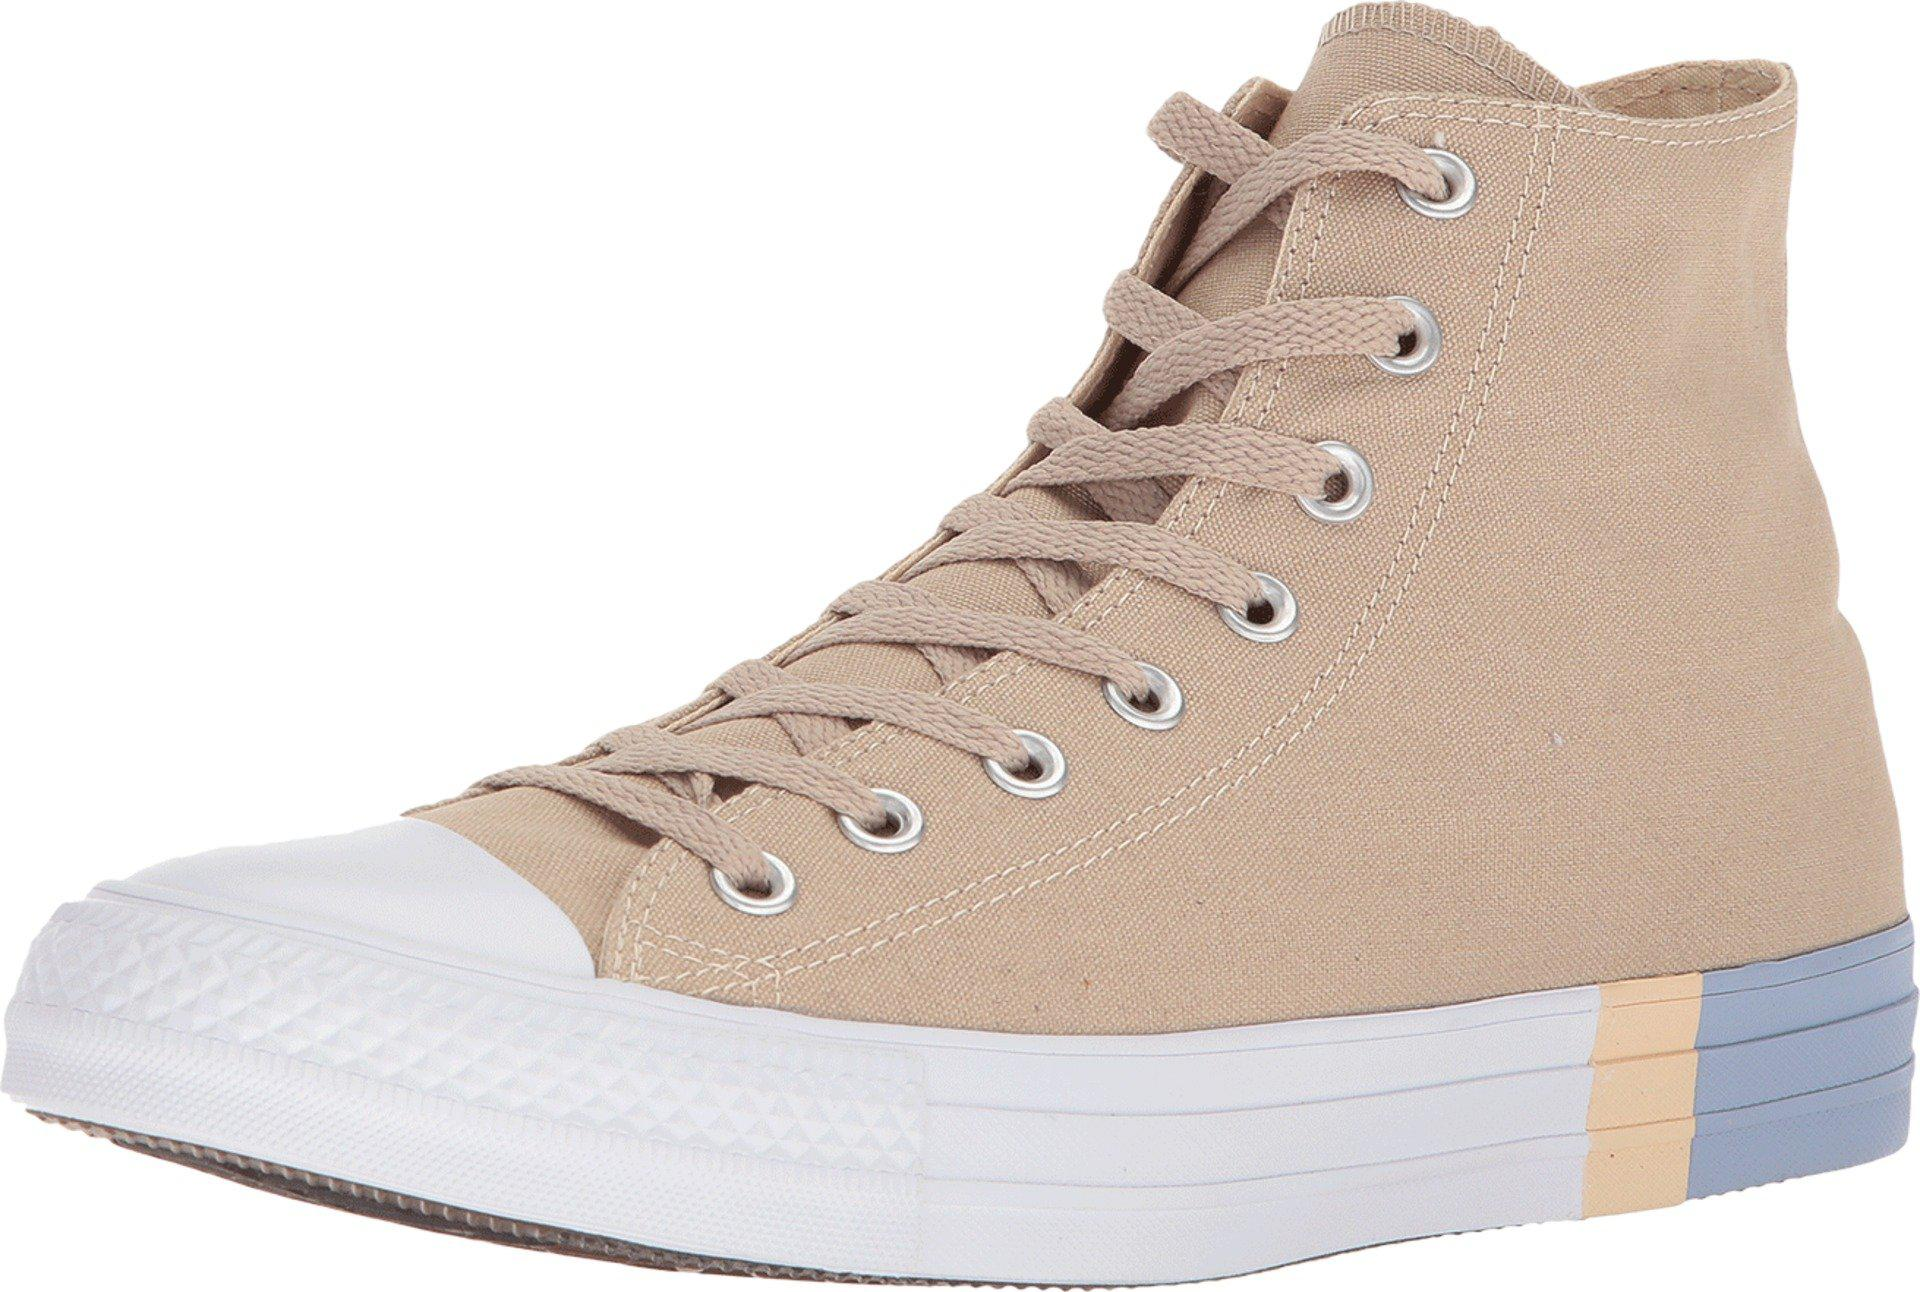 303e0845a7e Men's Natural Chuck Taylor® All Star Tri Block Midsole Hi